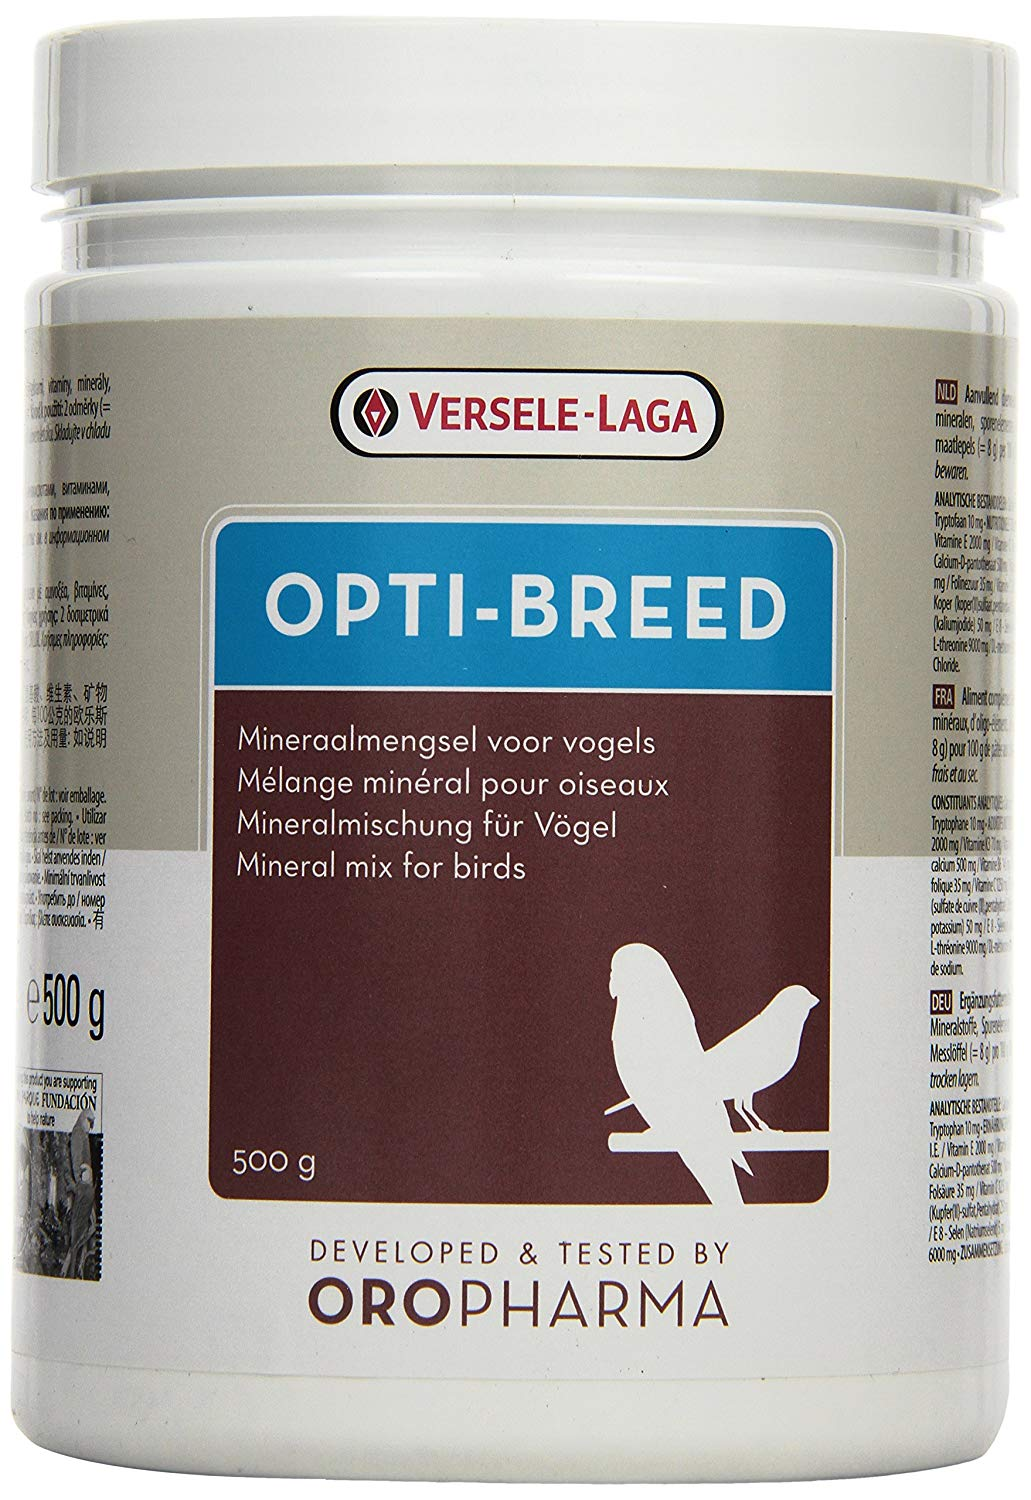 Versele-Laga Oropharma Opti-Breed 500gr Pigeons Poultry Birds - The Poultry coop